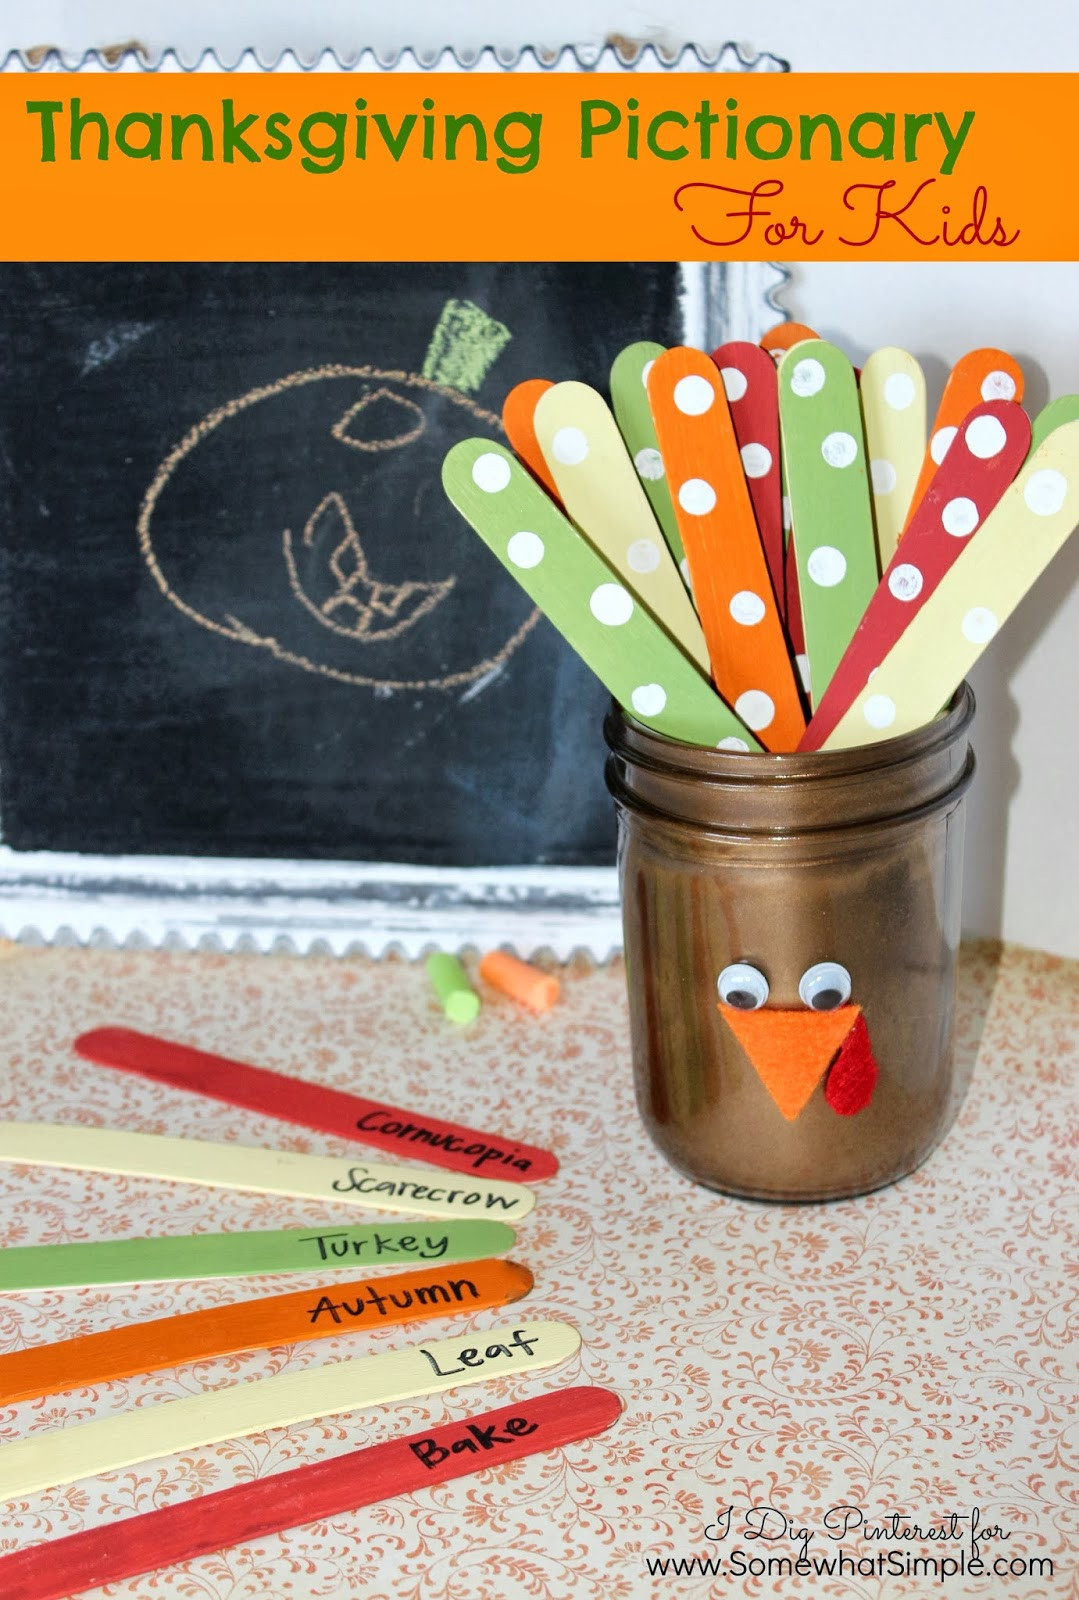 Thanksgiving Turkey Games  Thanksgiving Pictionary Game For Kids I Dig Pinterest